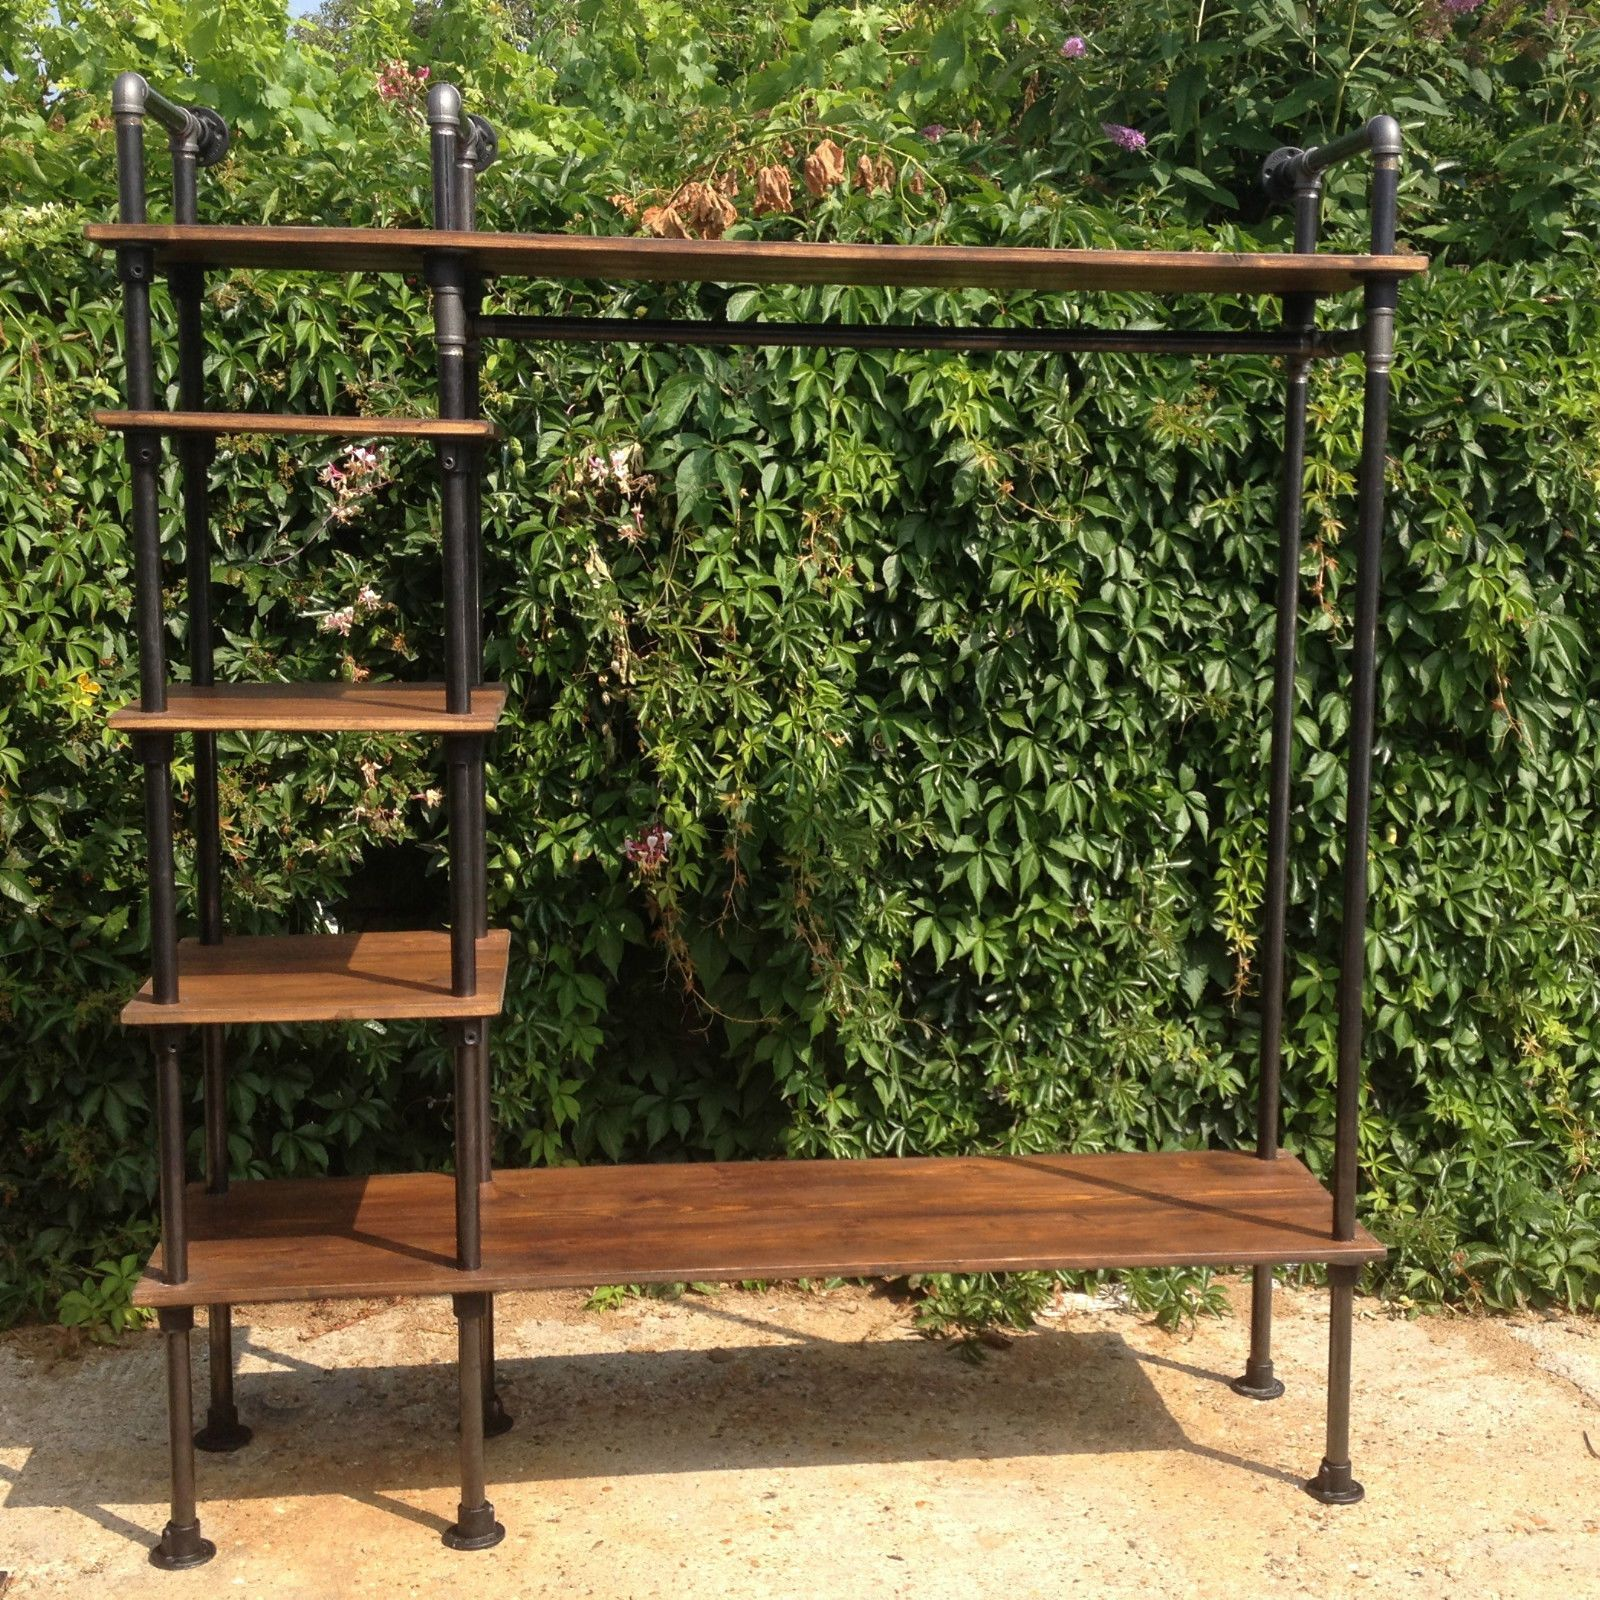 Vintage Industrial Style Retro Clothes Rail Vintage Industrial Style With Gas Pipes